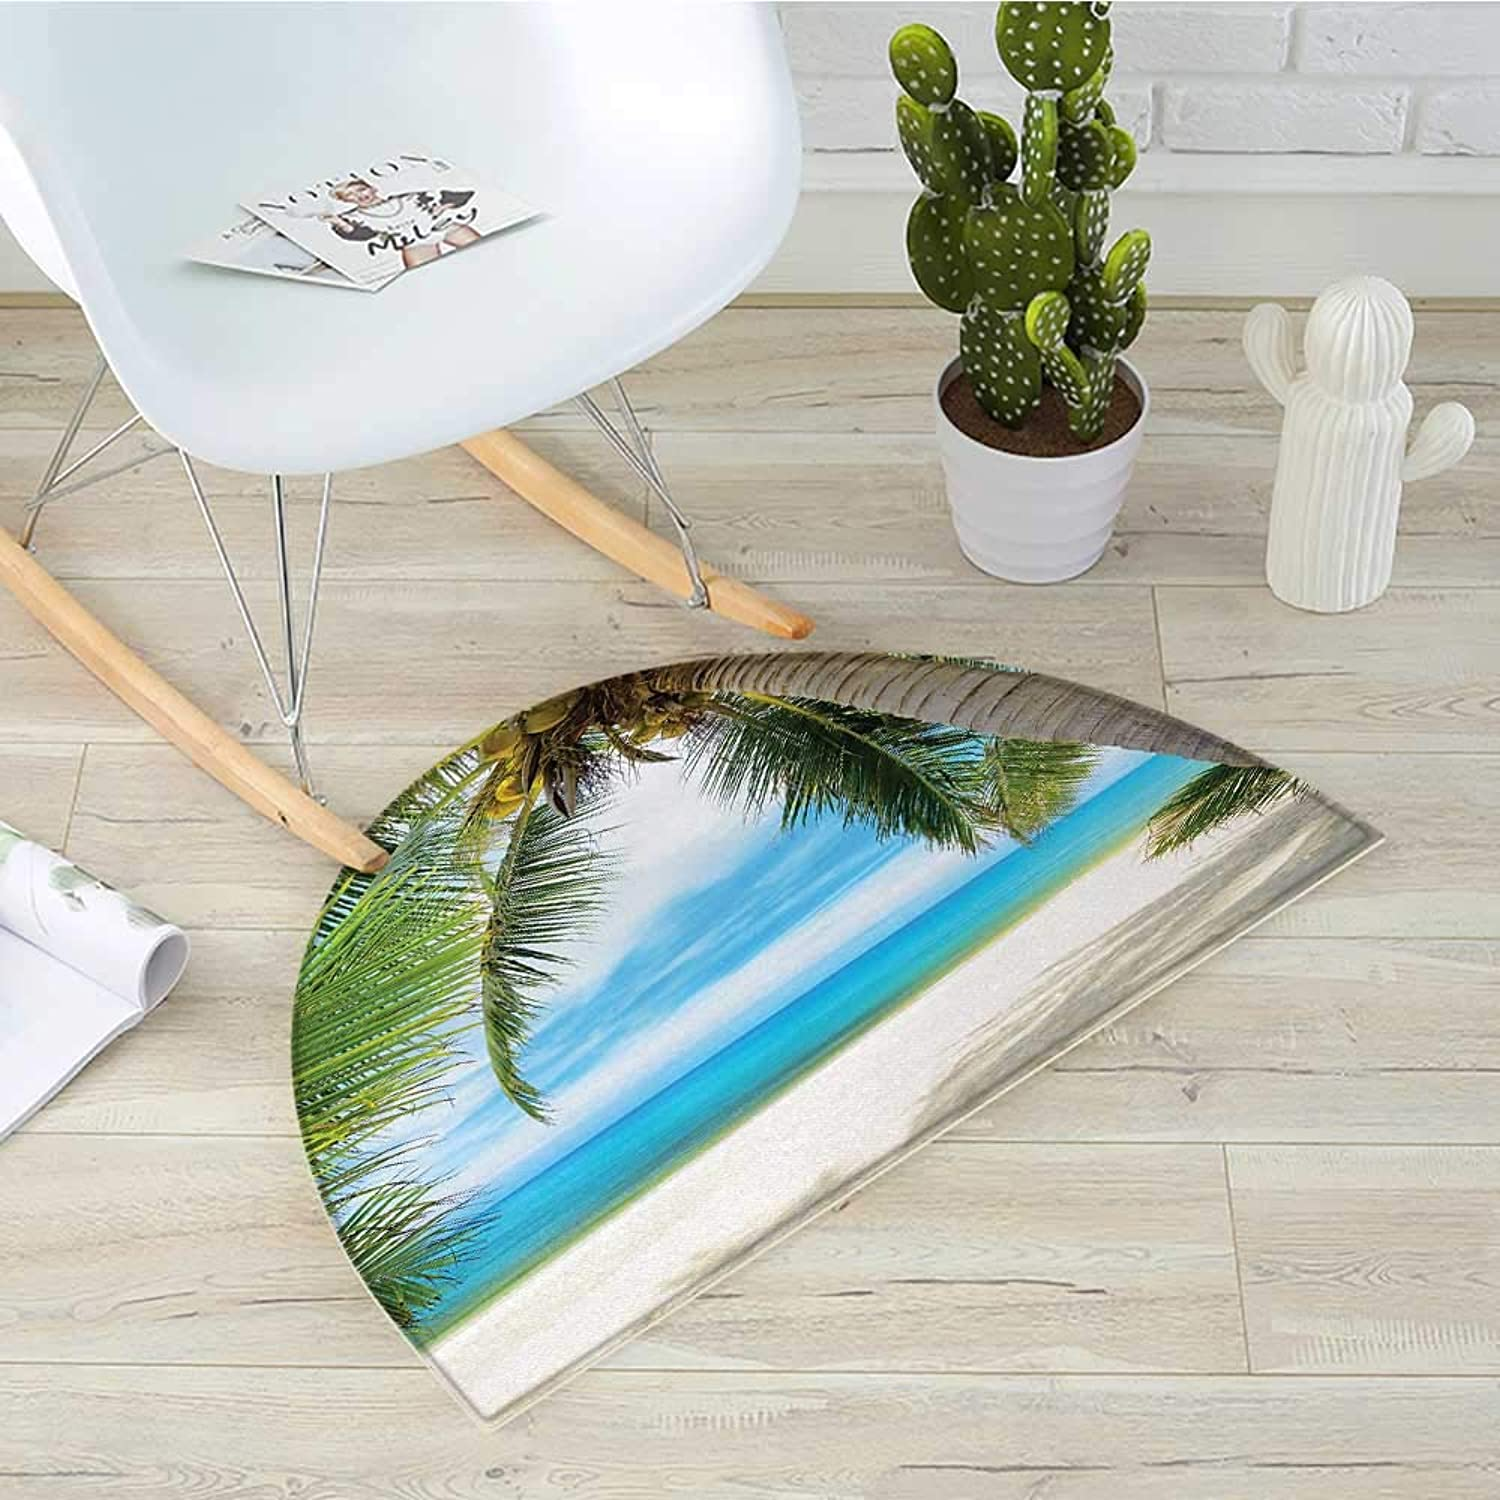 Ocean Half Round Door mats Shadow Shade of a Coconut Palm Tree on White Sandy Seashore Image Bathroom Mat H 35.4  xD 53.1  Light Green Light bluee White